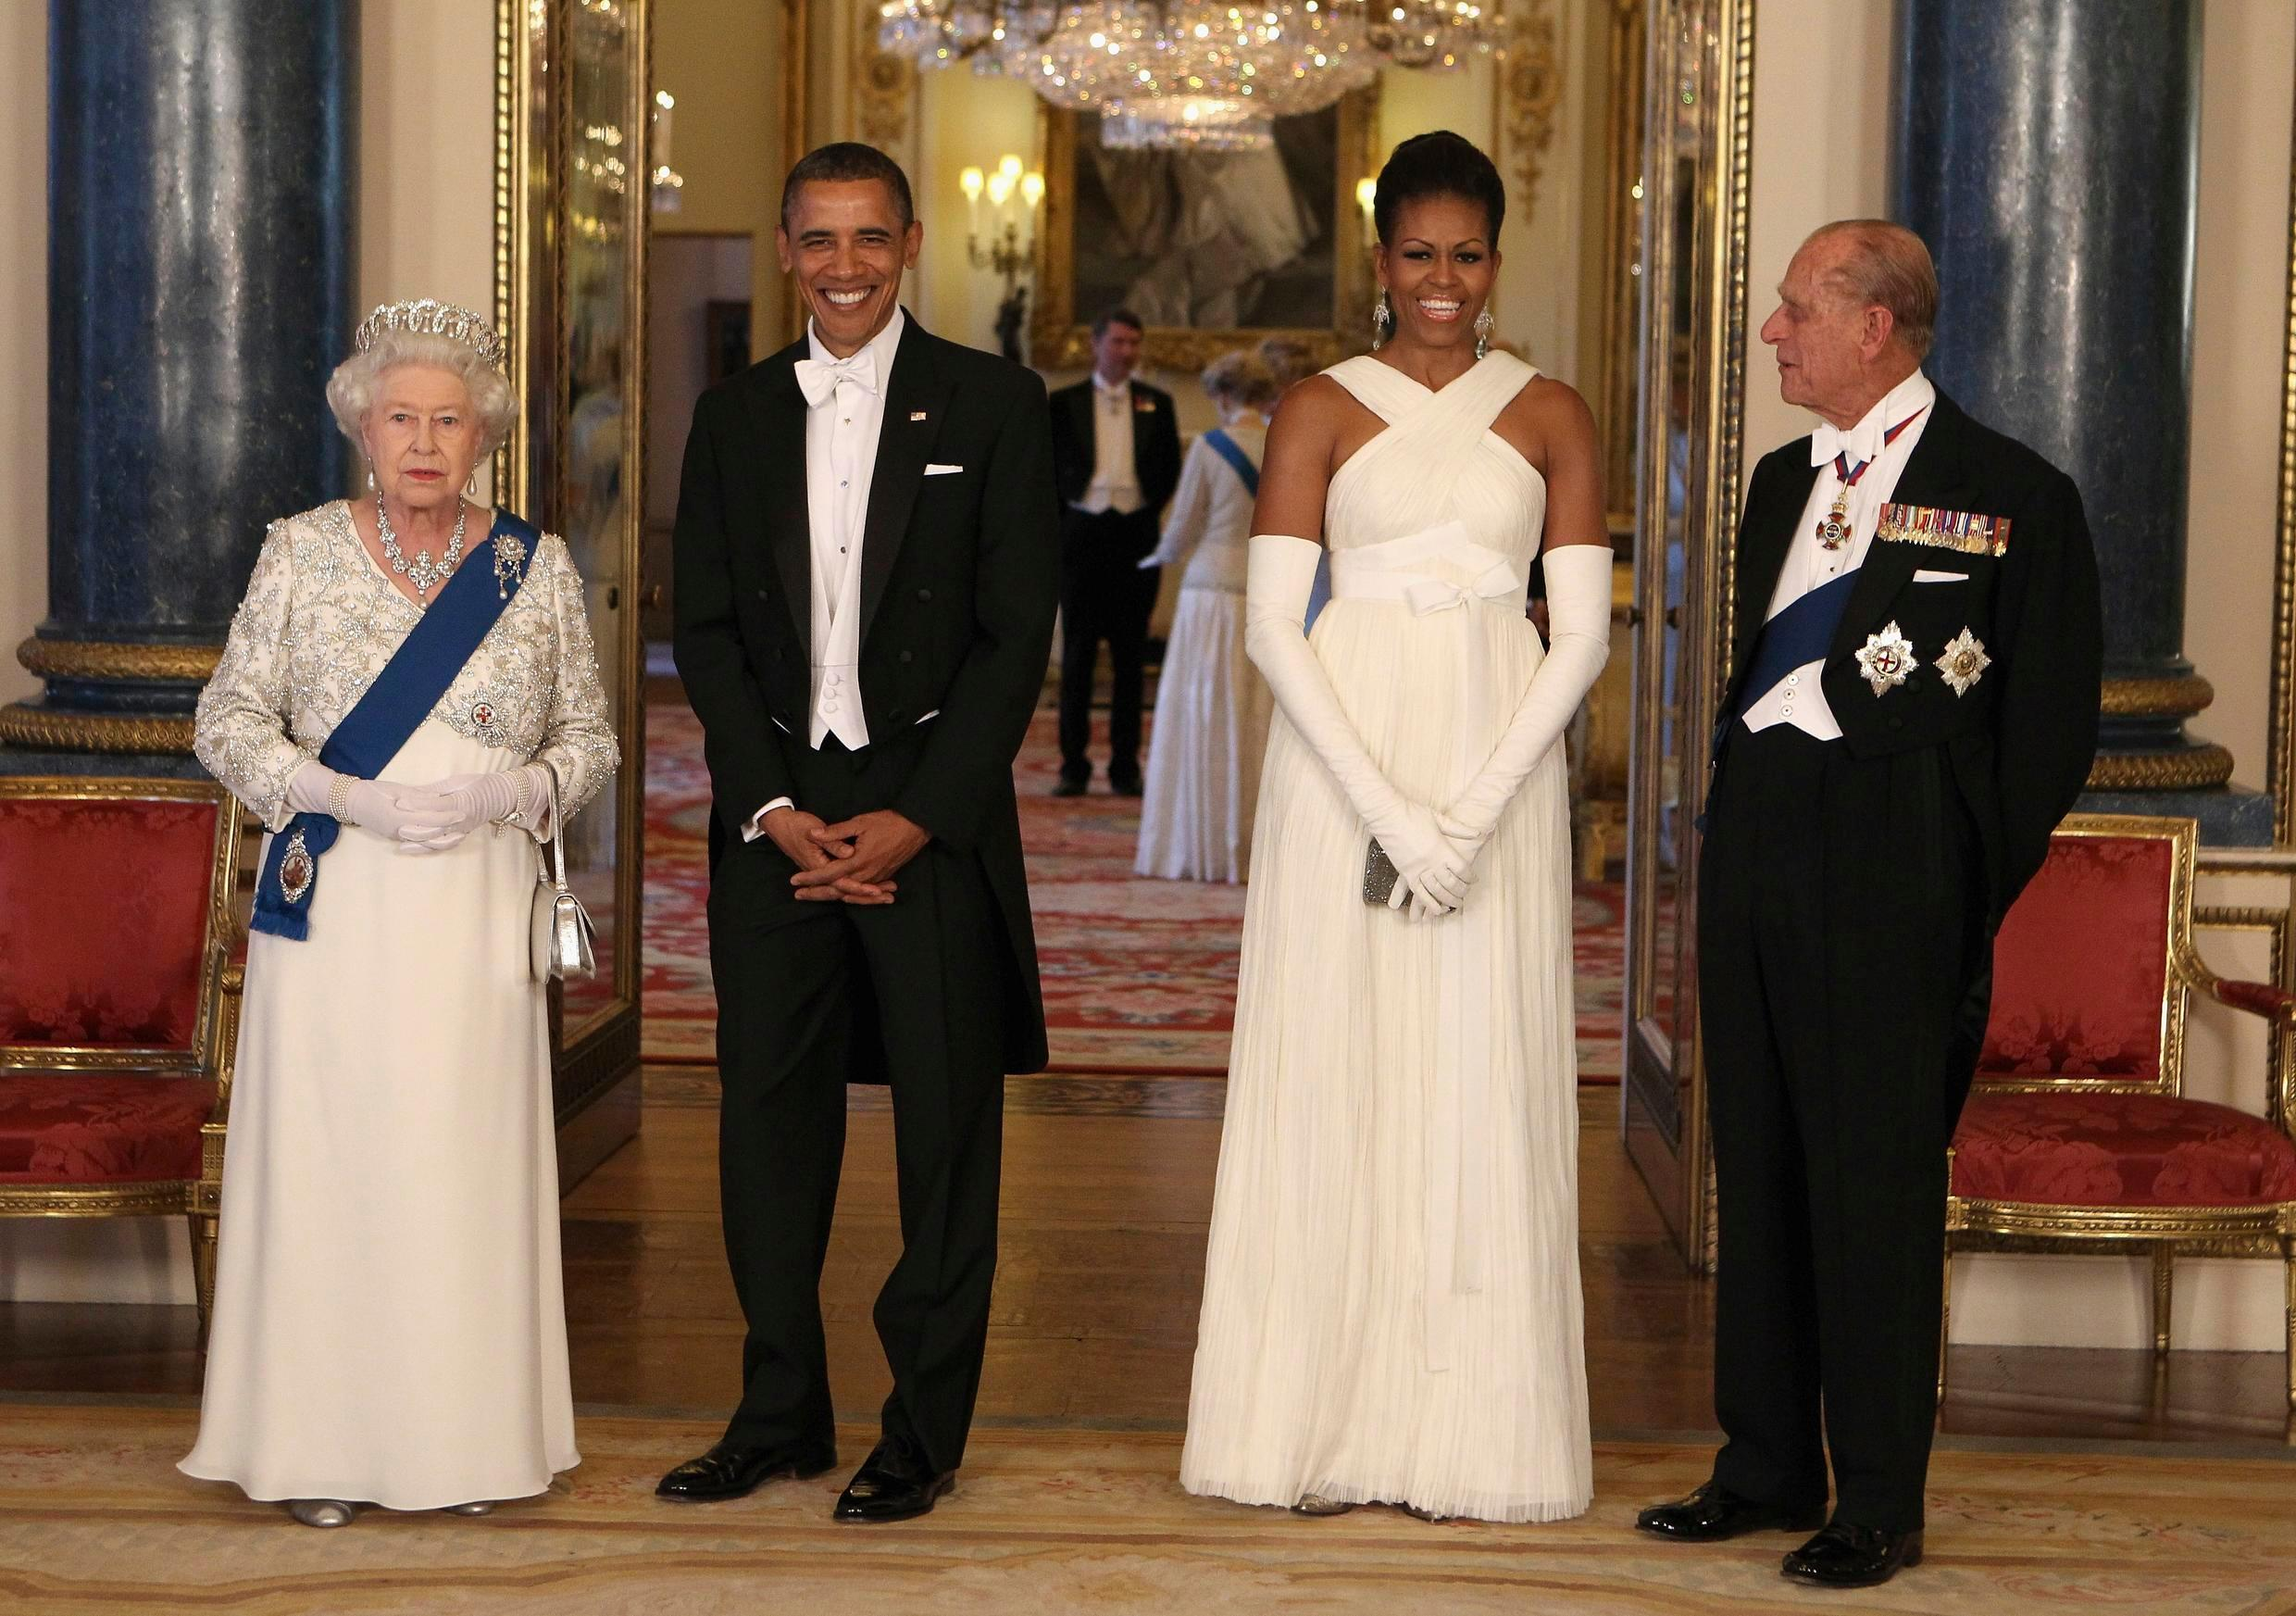 This May 24, 2011 file photo shows Her Majesty The Queen, then US President Barack Obama, then First Lady Michelle Obama and Prince Philip ahead of a state banquet in Buckingham Palace, London.